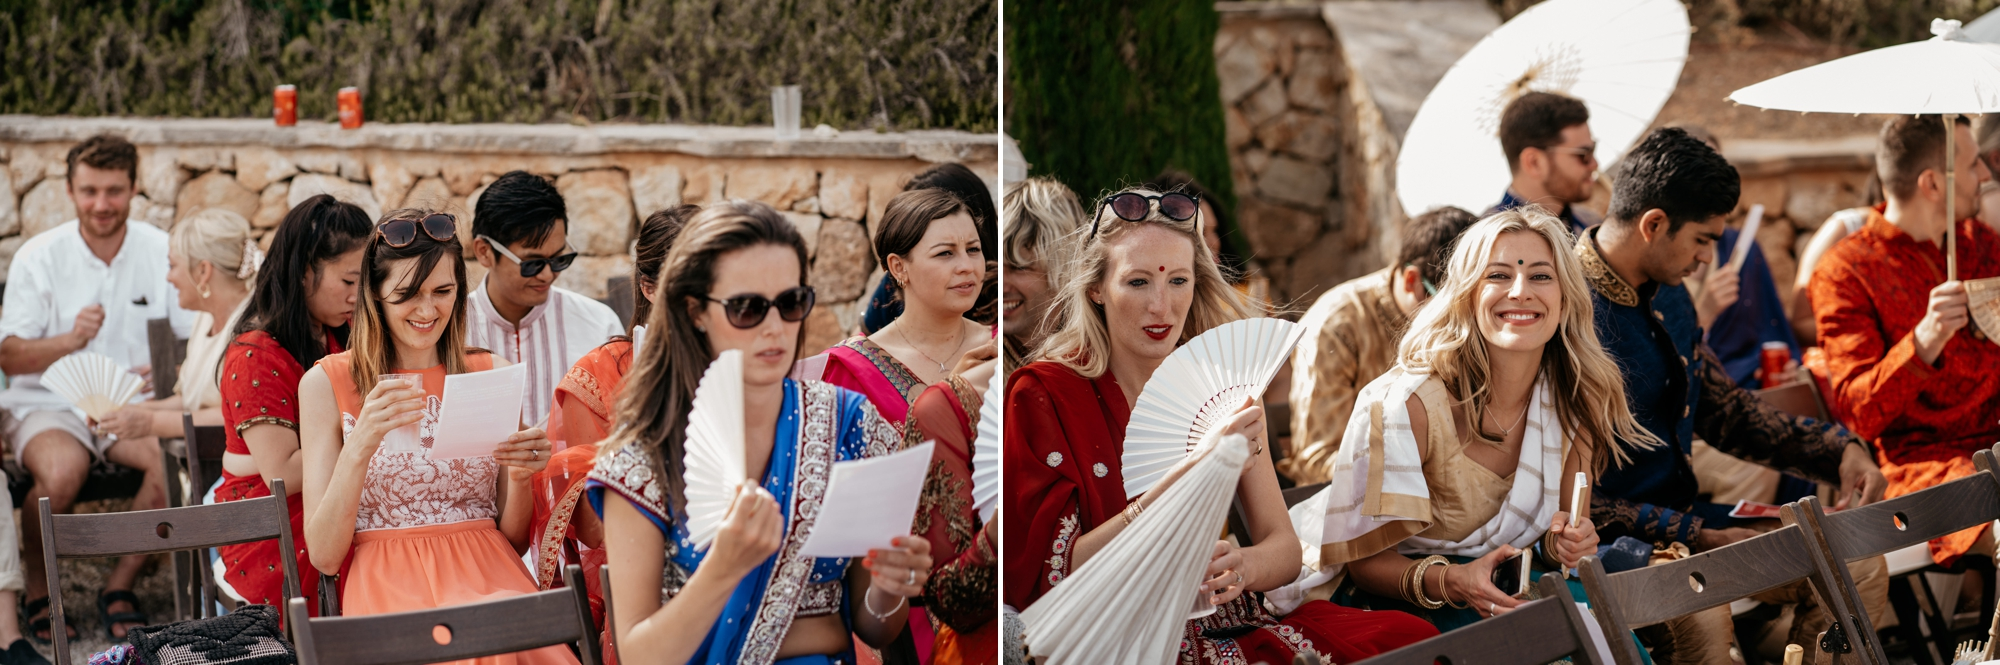 natural wedding photography mallorca boda hindu 0072 1